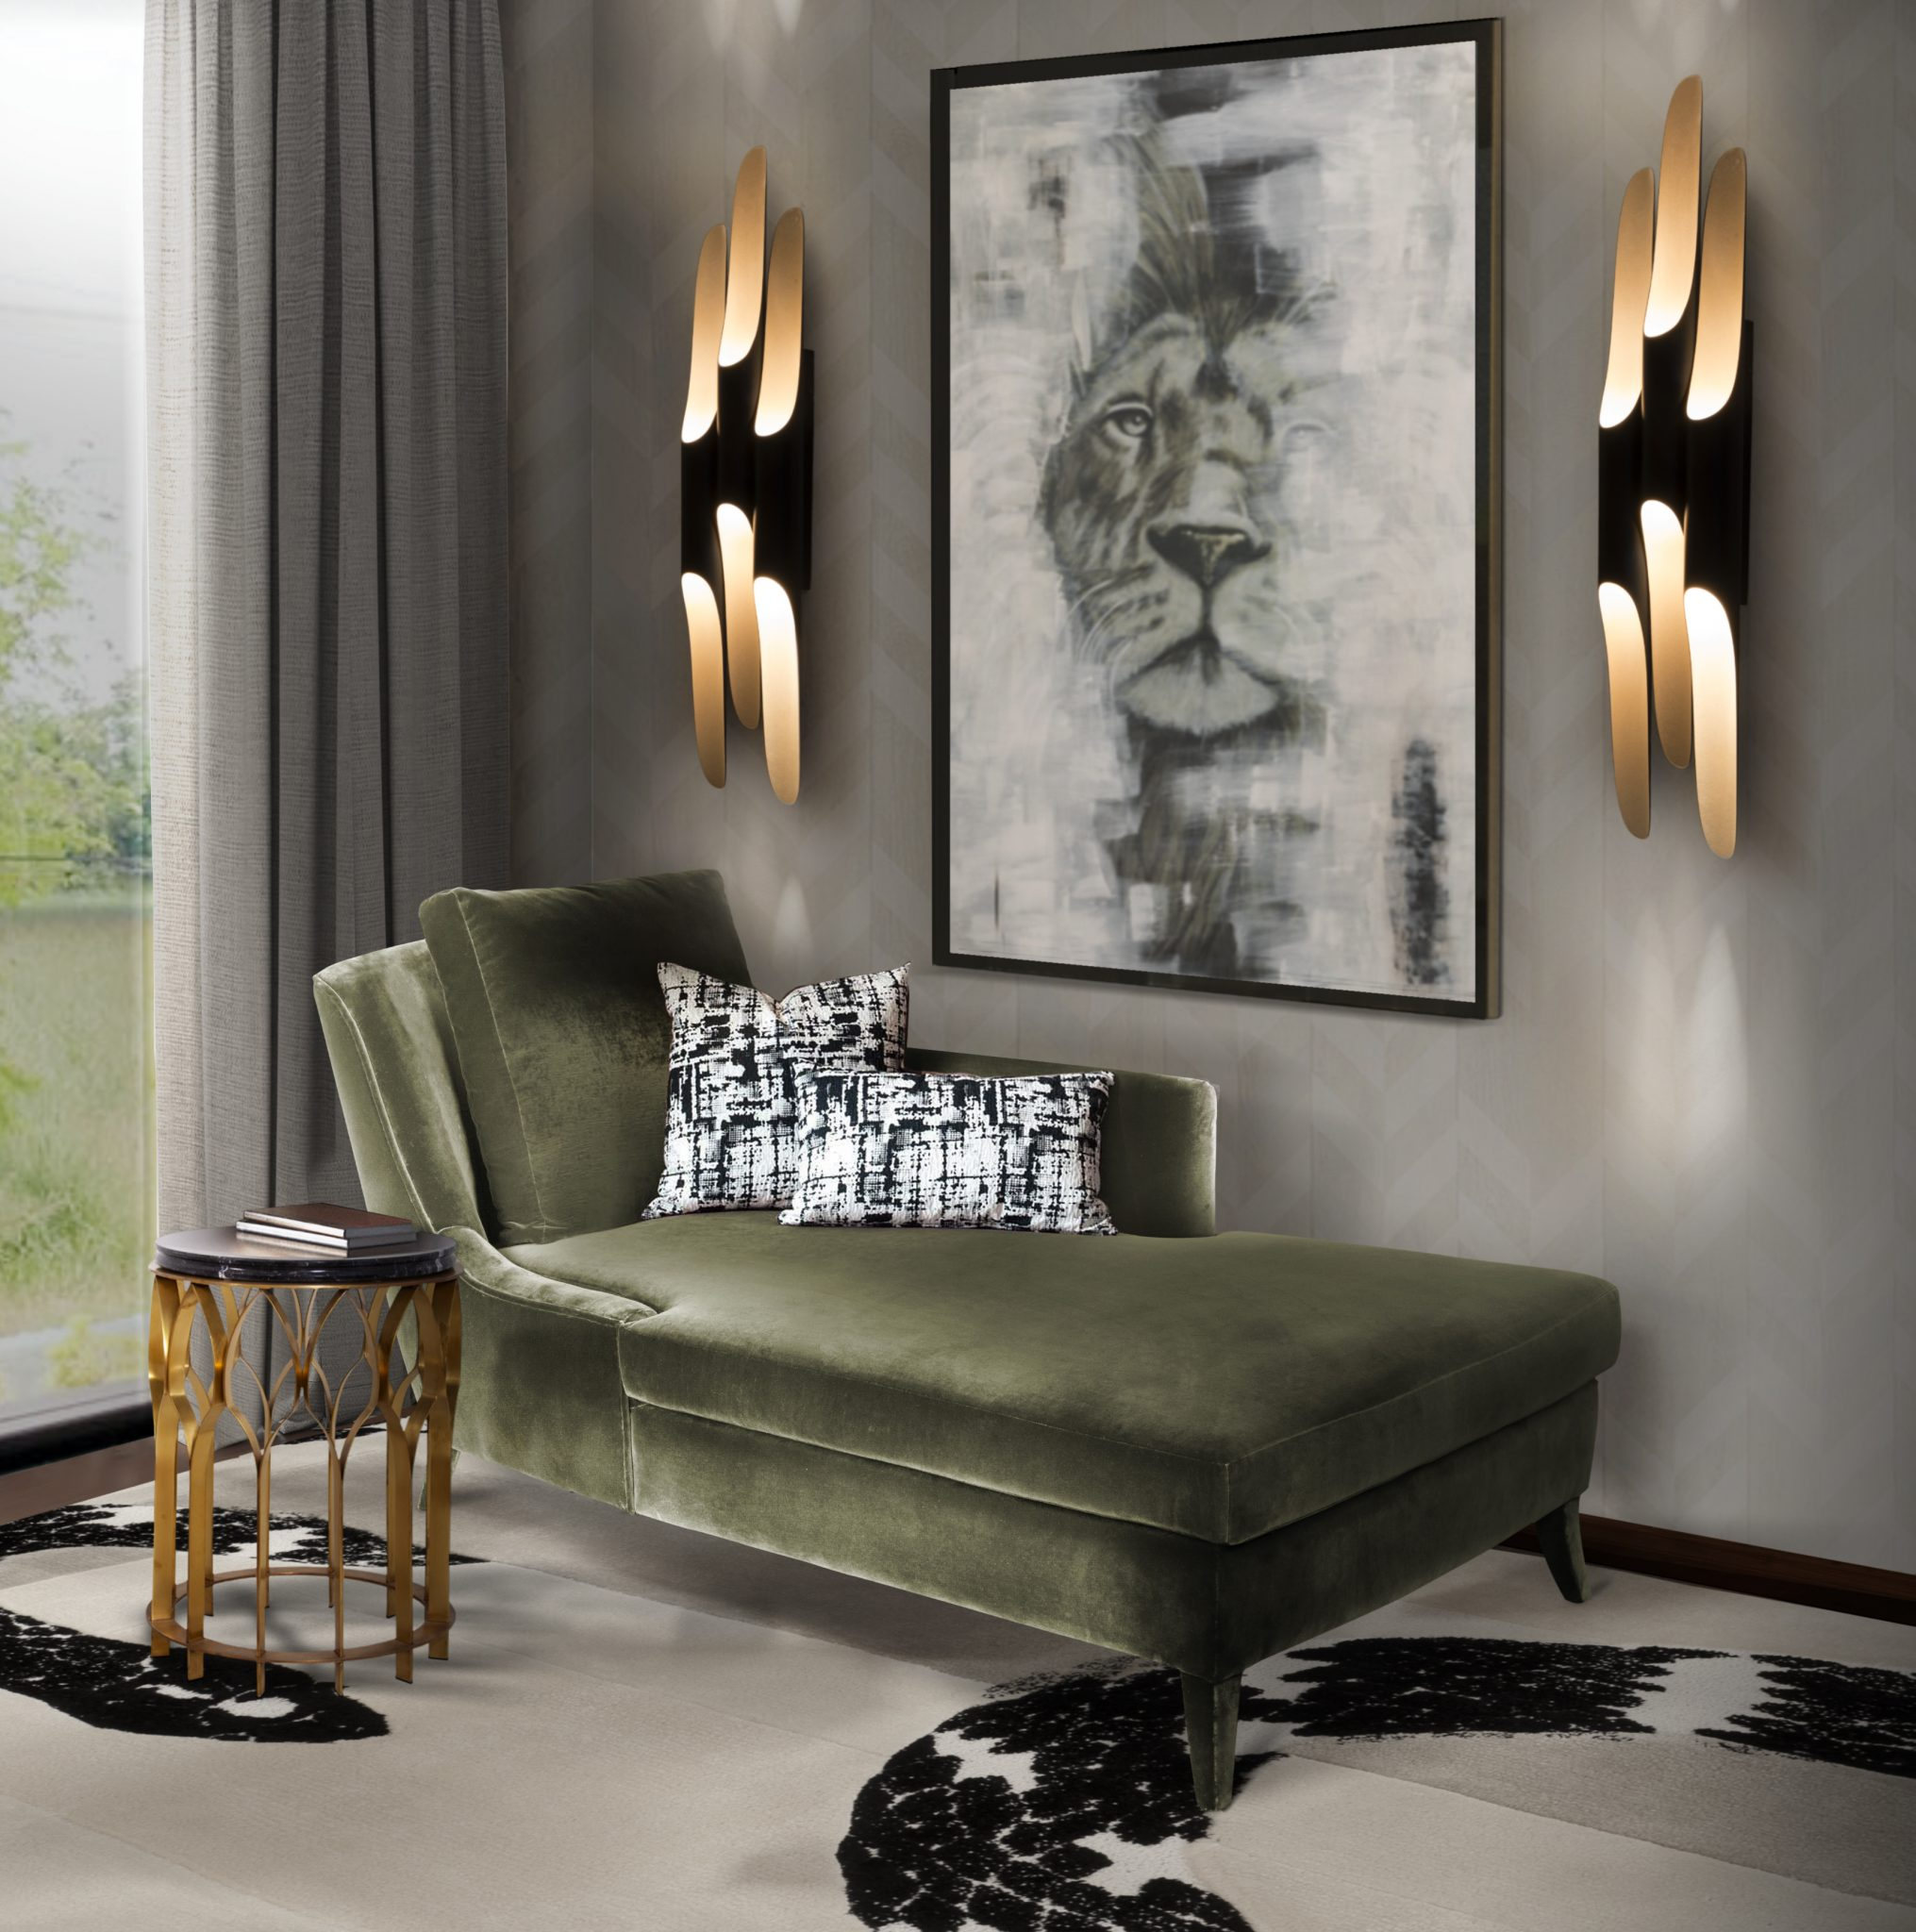 LIGHTING DESIGN FOR ELEGANT LIVING ROOM